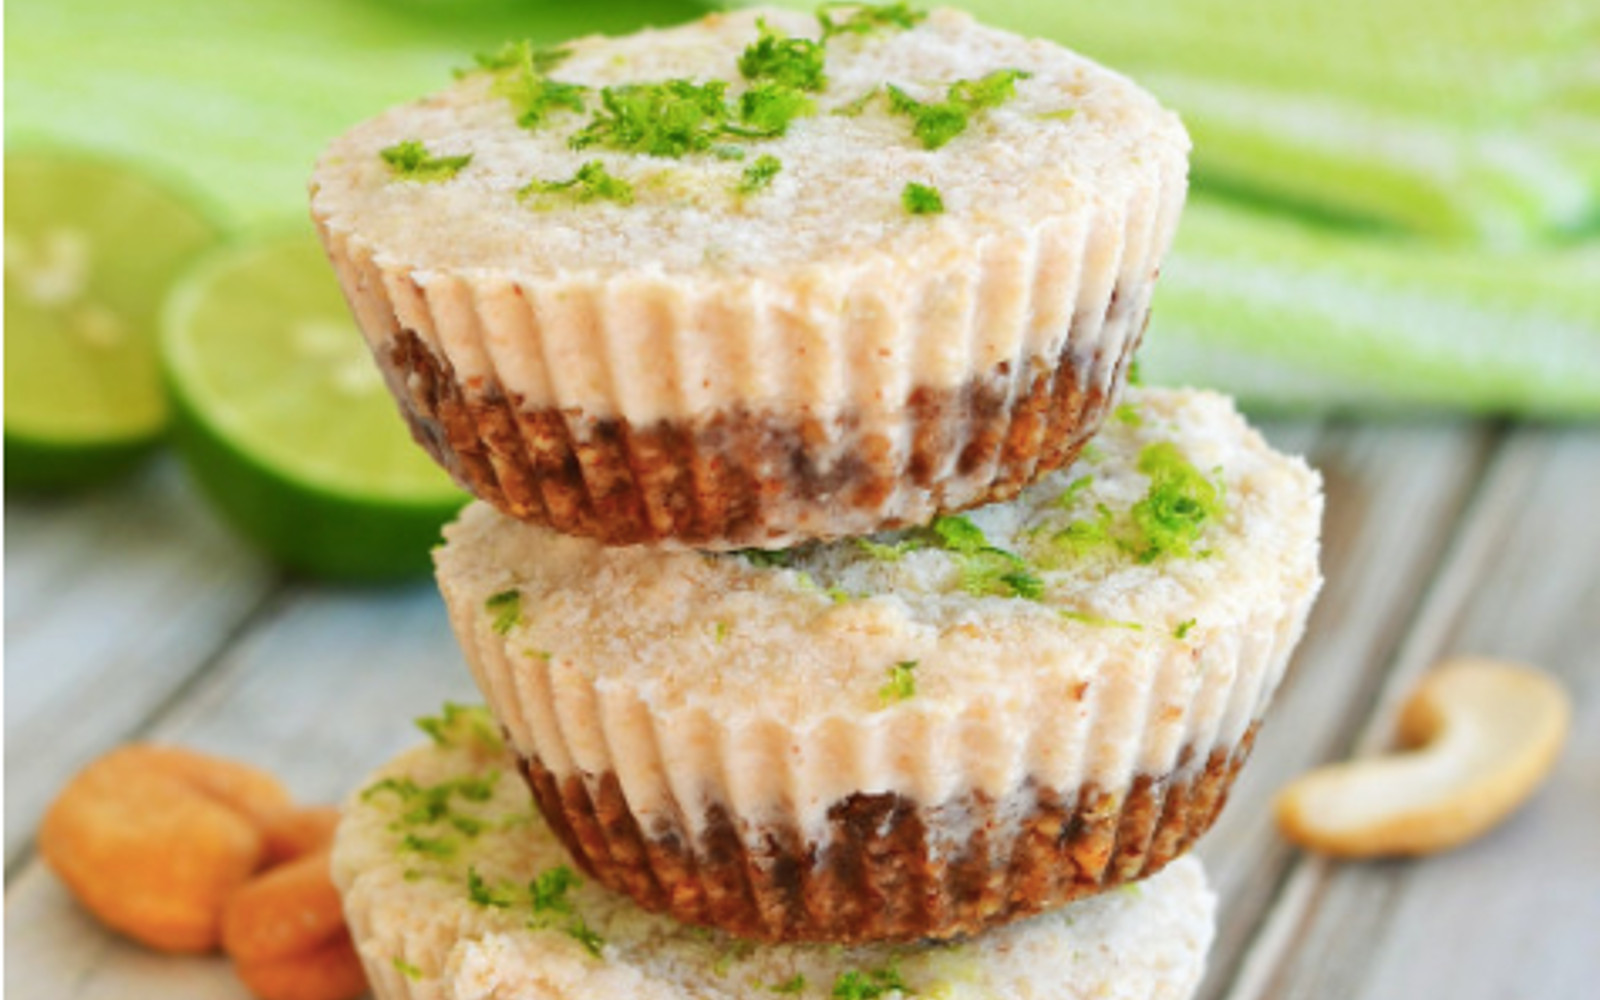 Vegan Gluten-Free Mini Key Lime Pies with lime zest topping